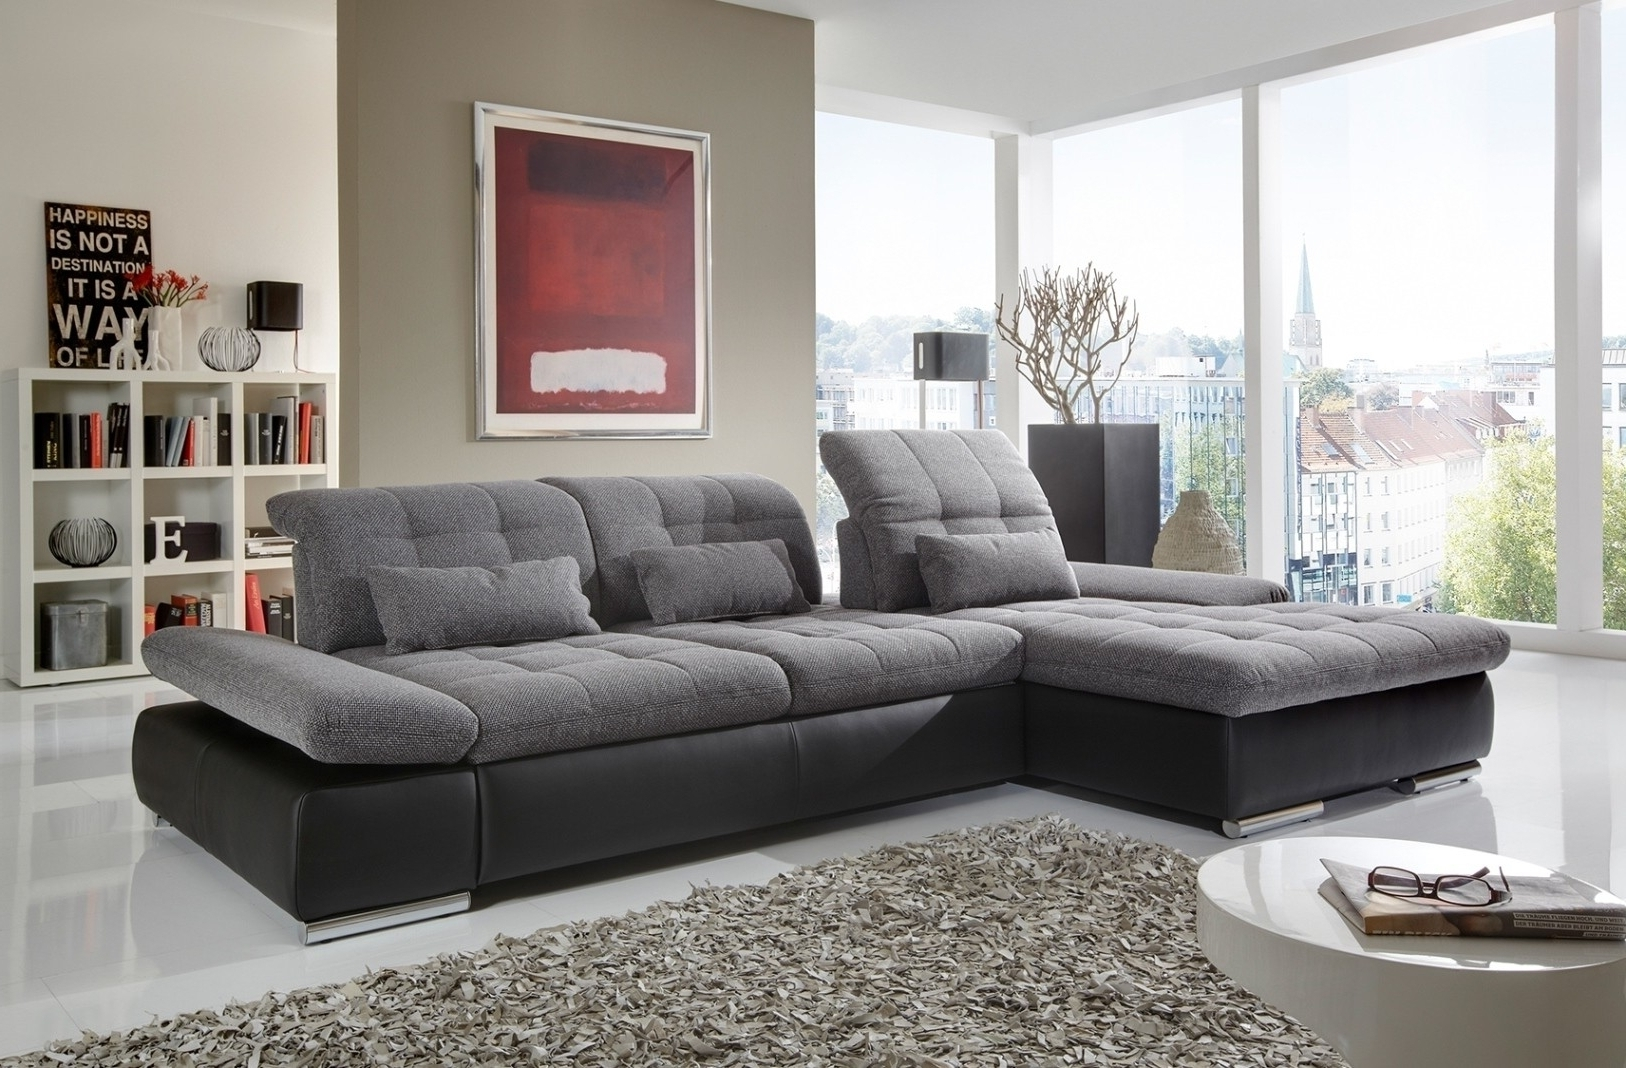 Top 20 Of Trinidad And Tobago Sectional Sofas Intended For Trinidad And Tobago Sectional Sofas (View 3 of 10)